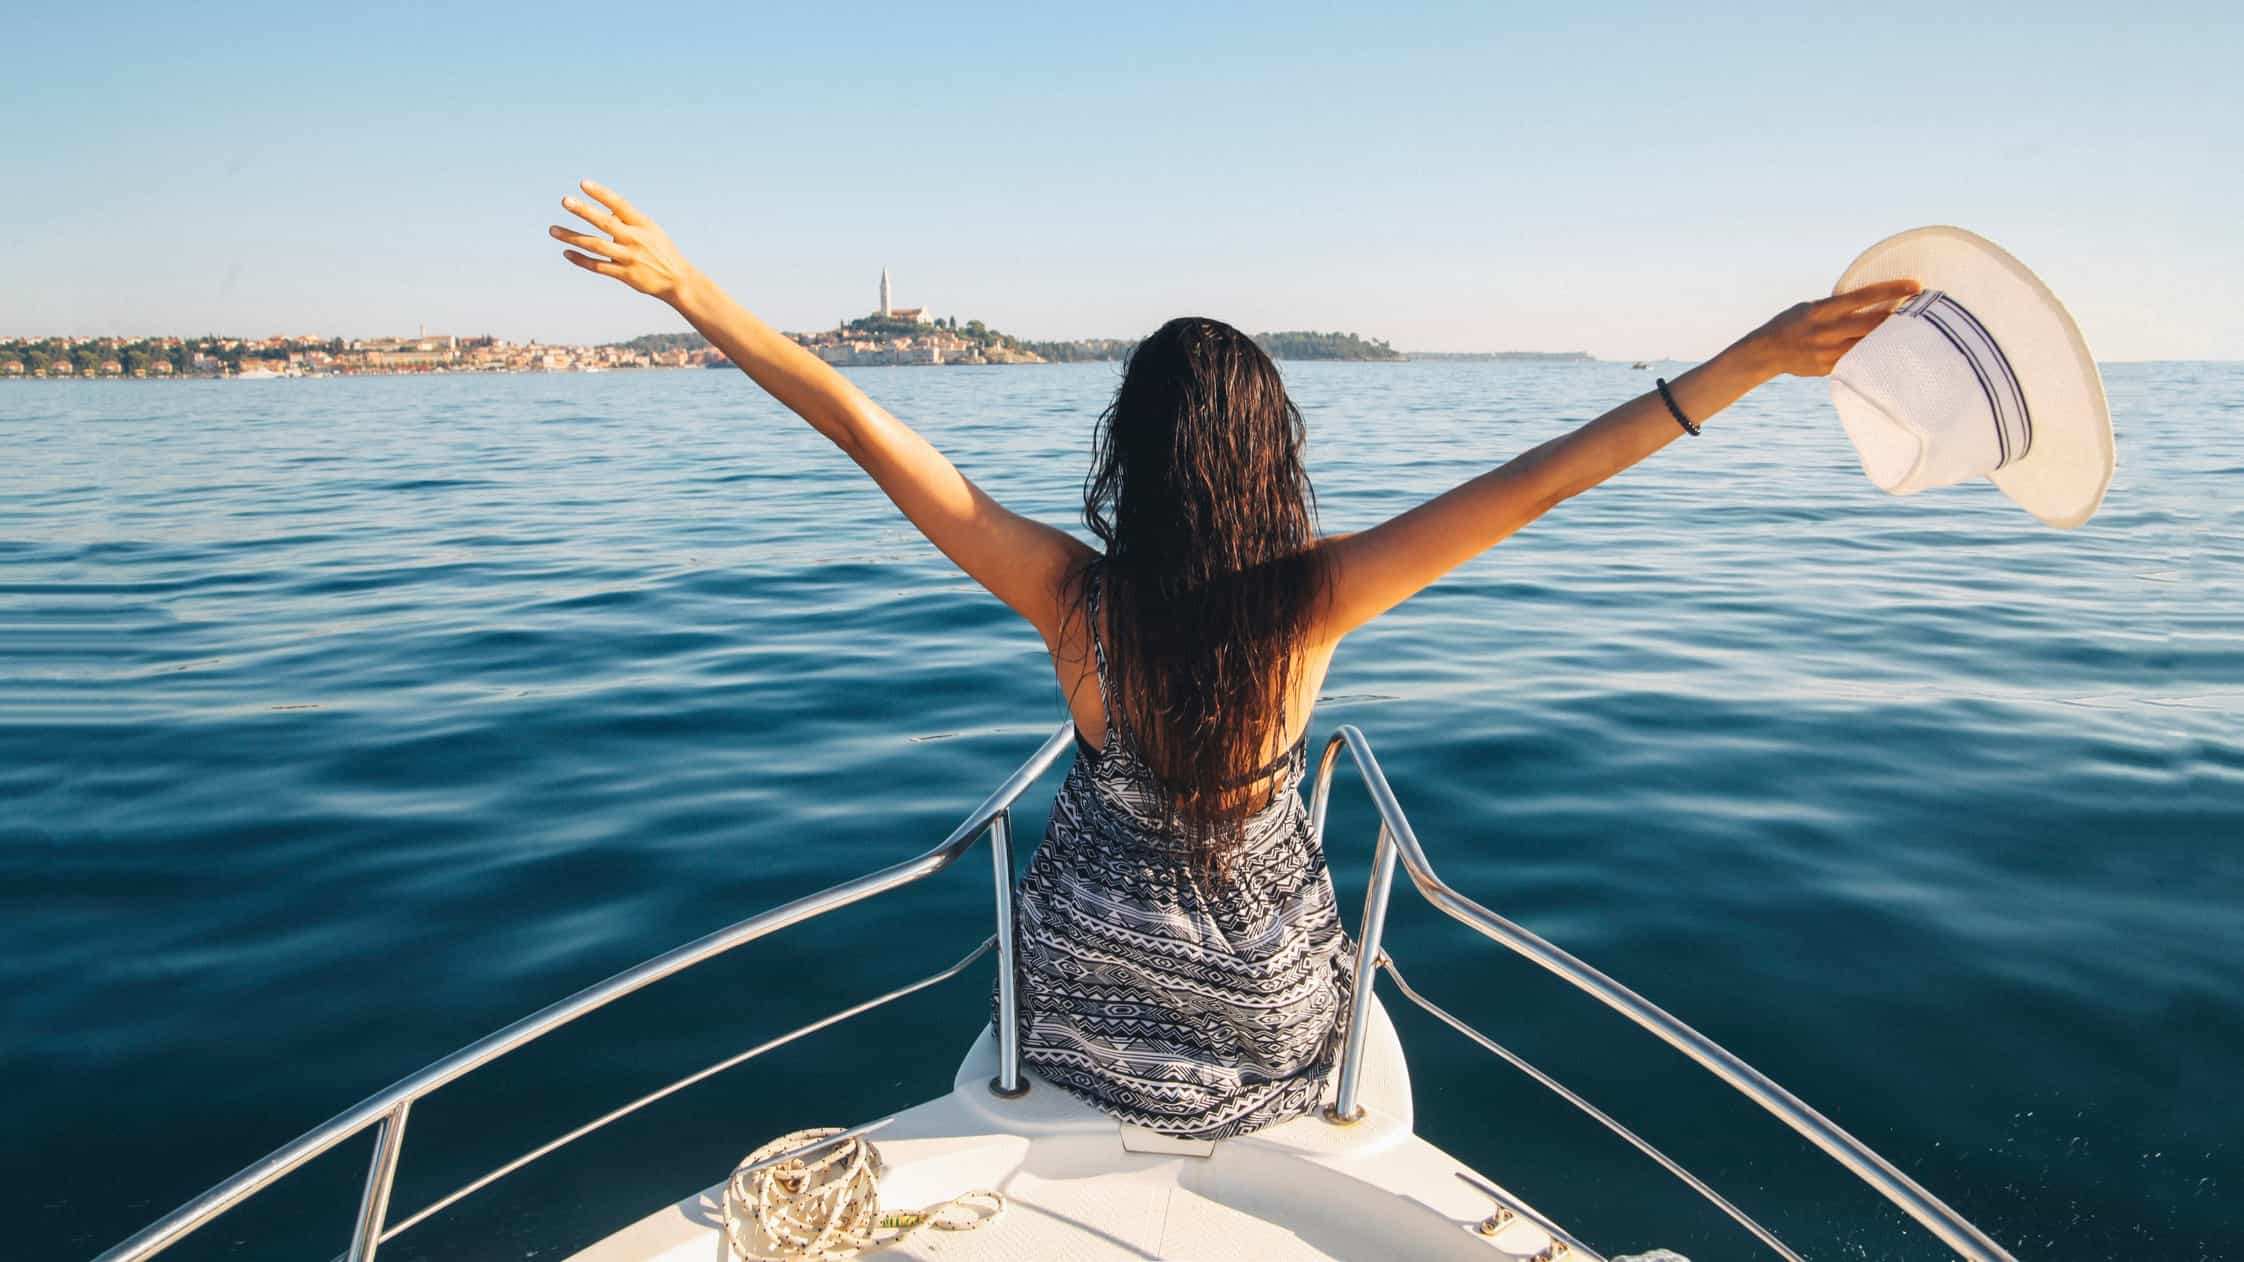 A young woman sitting atop a superyacht spreads her arms in joy, indictaing a share price rise for marine companies